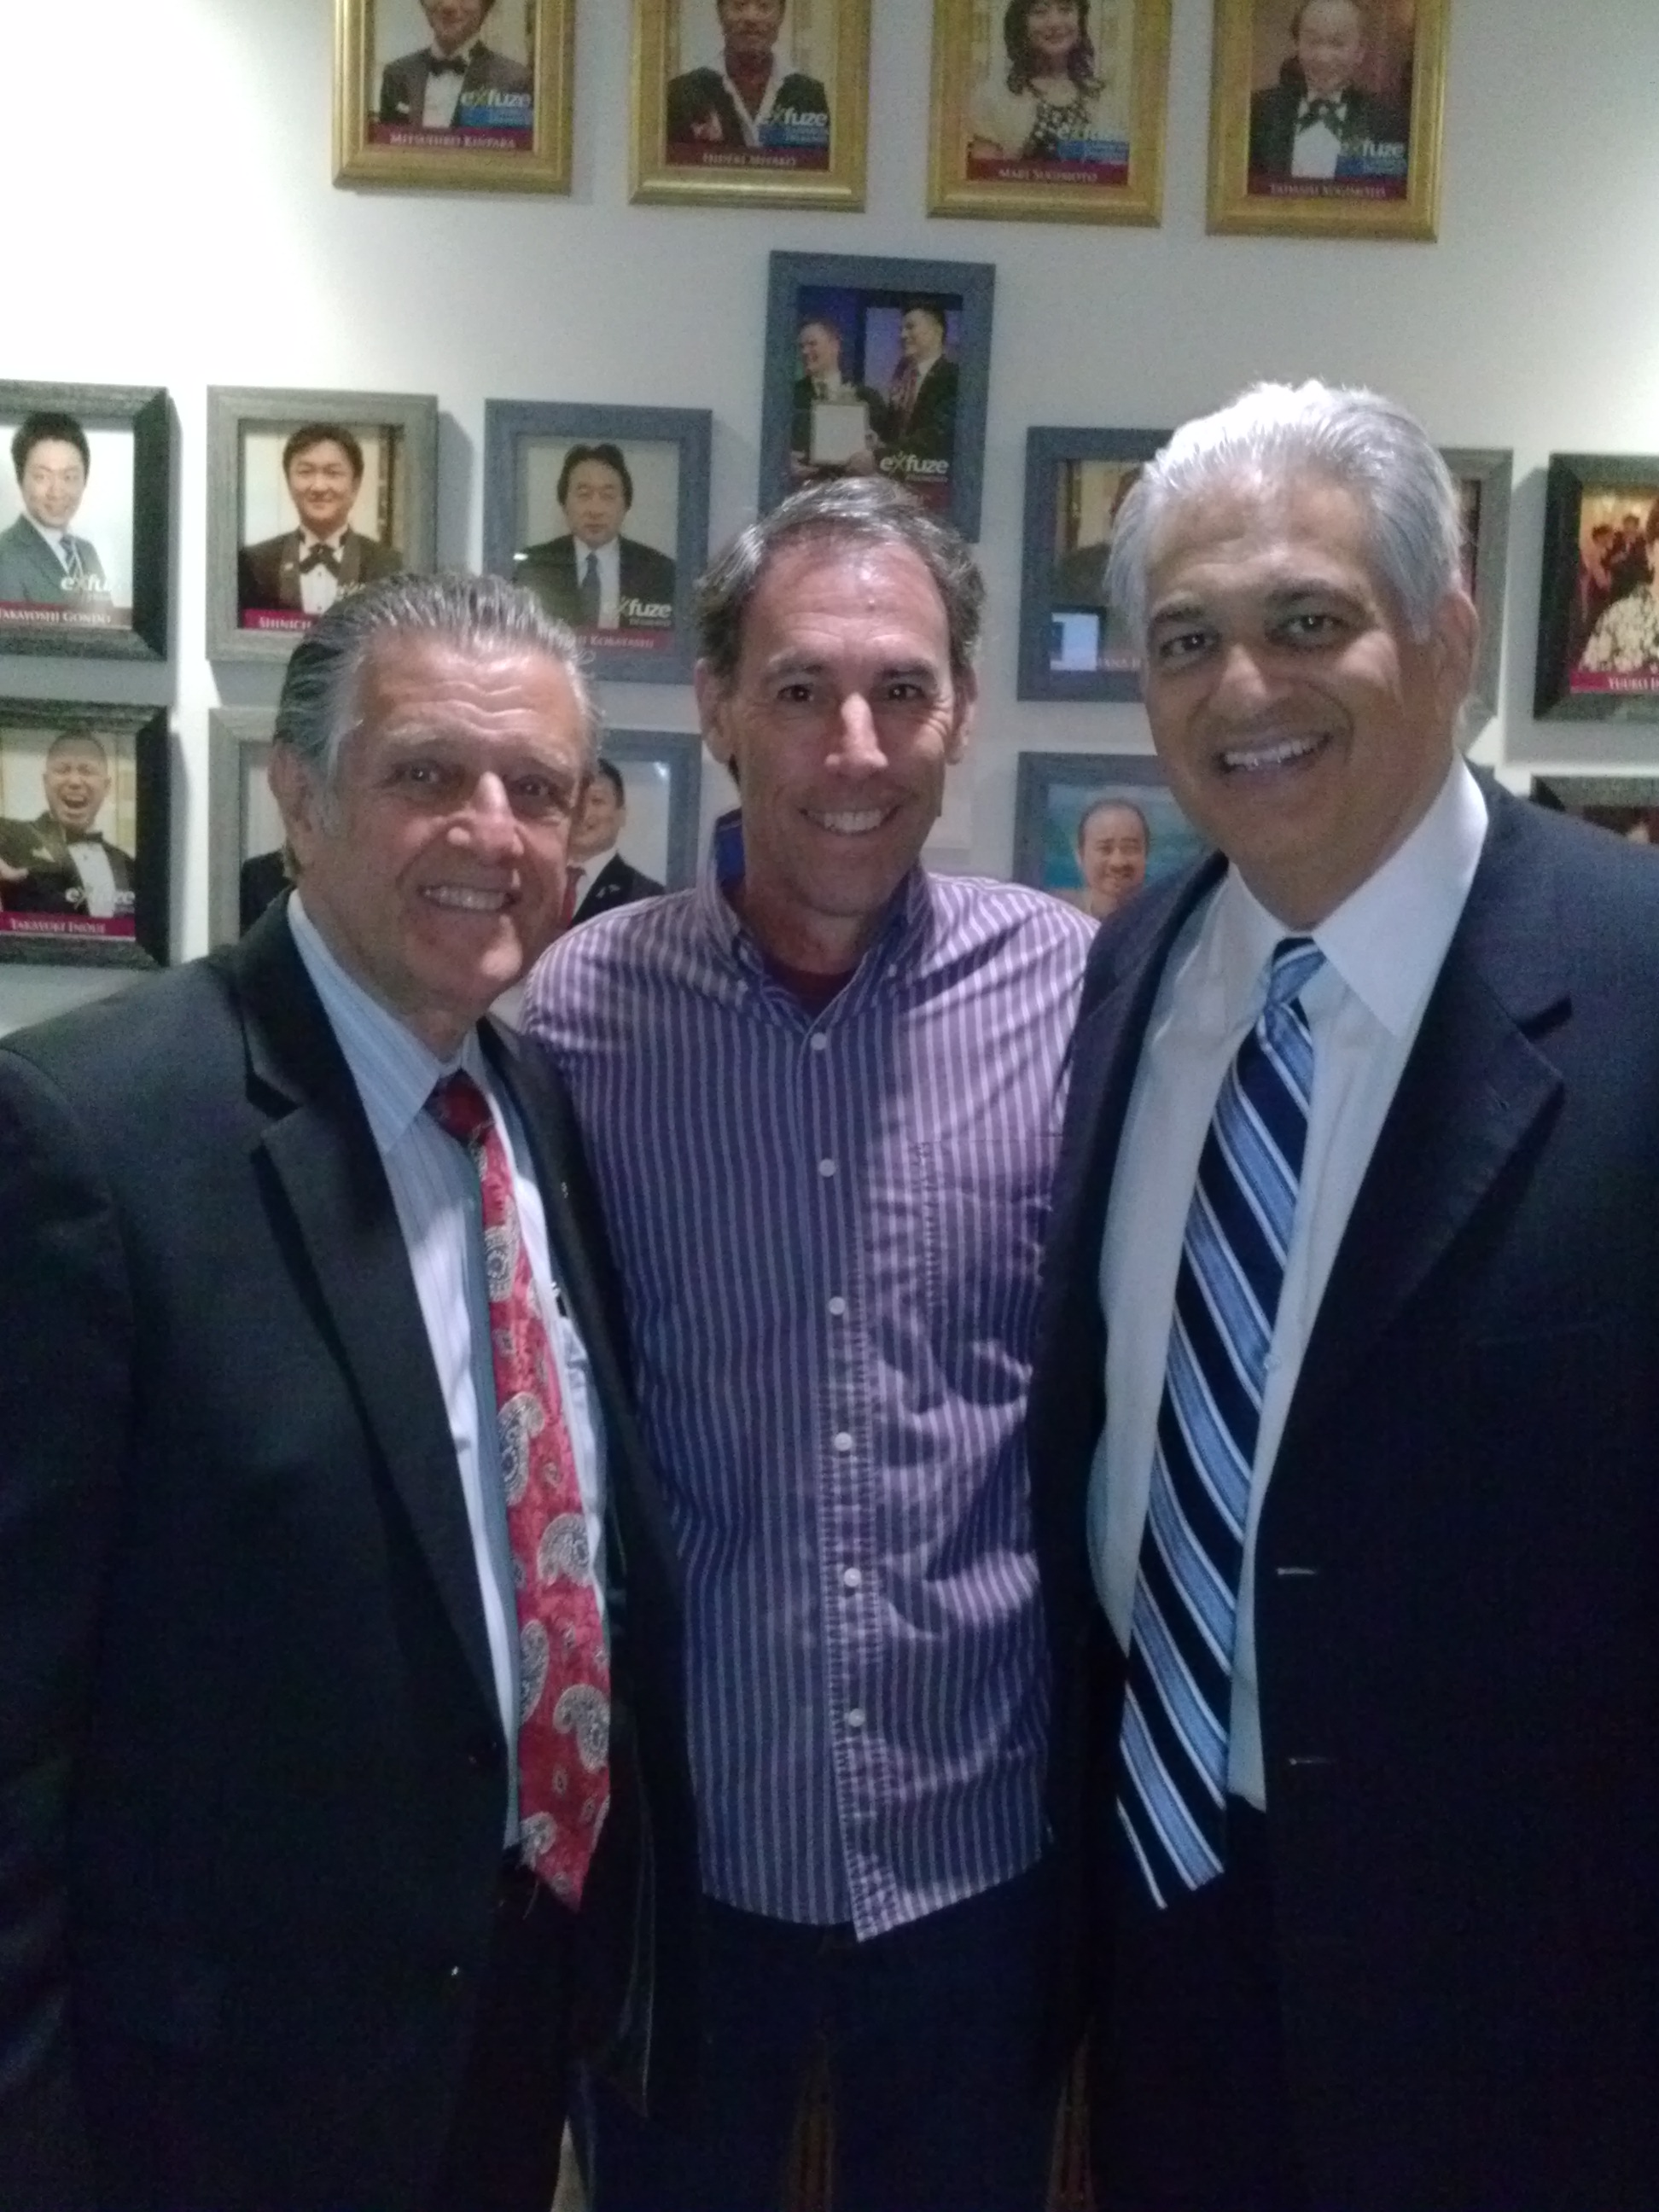 Jim with Paul Morris & Bob Burg